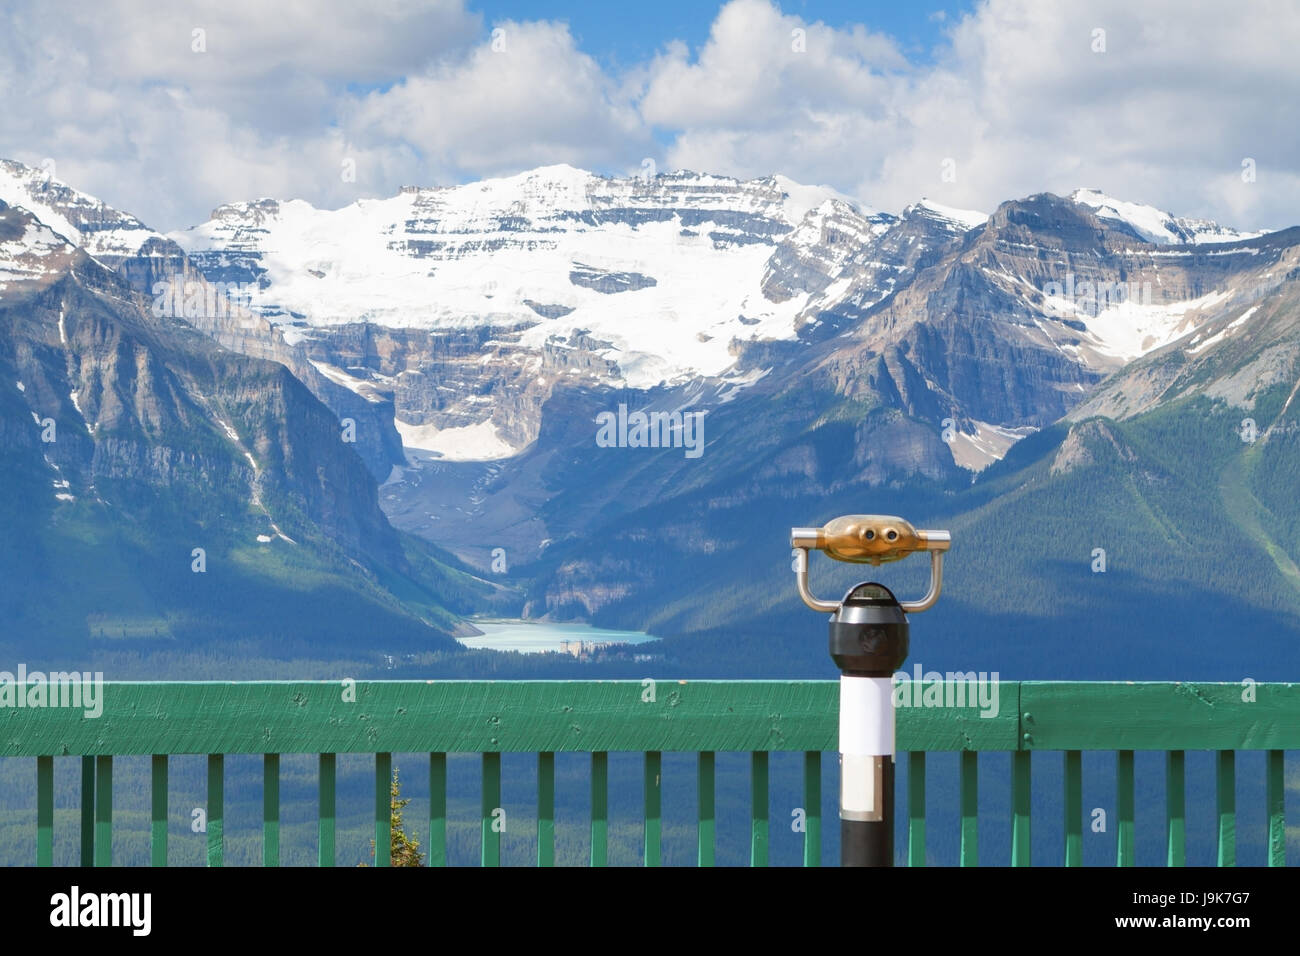 Lake Louise In Banff National Park And The Canadian Rockies - Stock Image